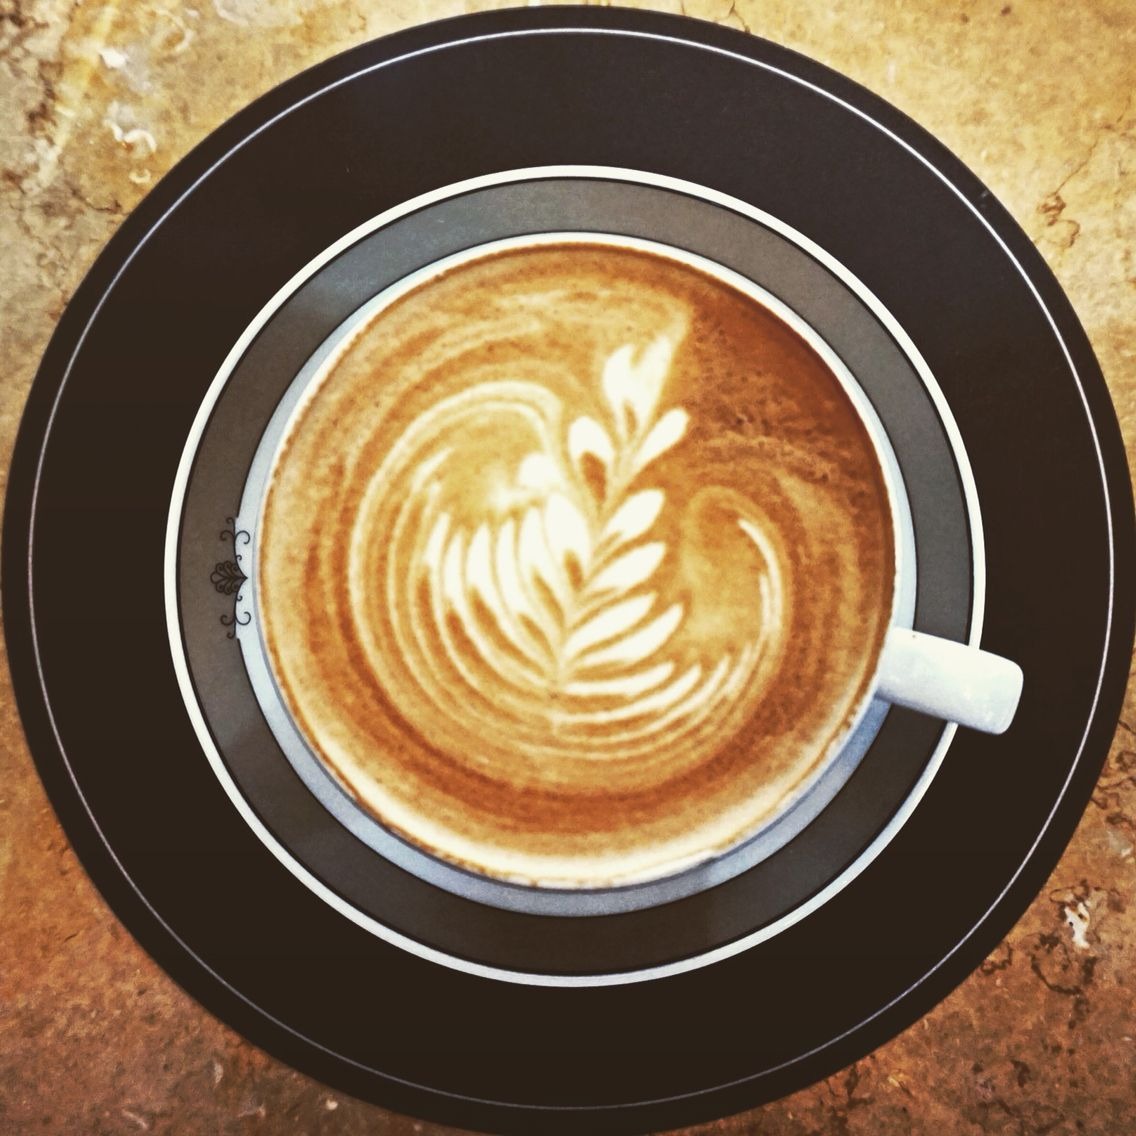 #wosley #coffee boutique style coffee